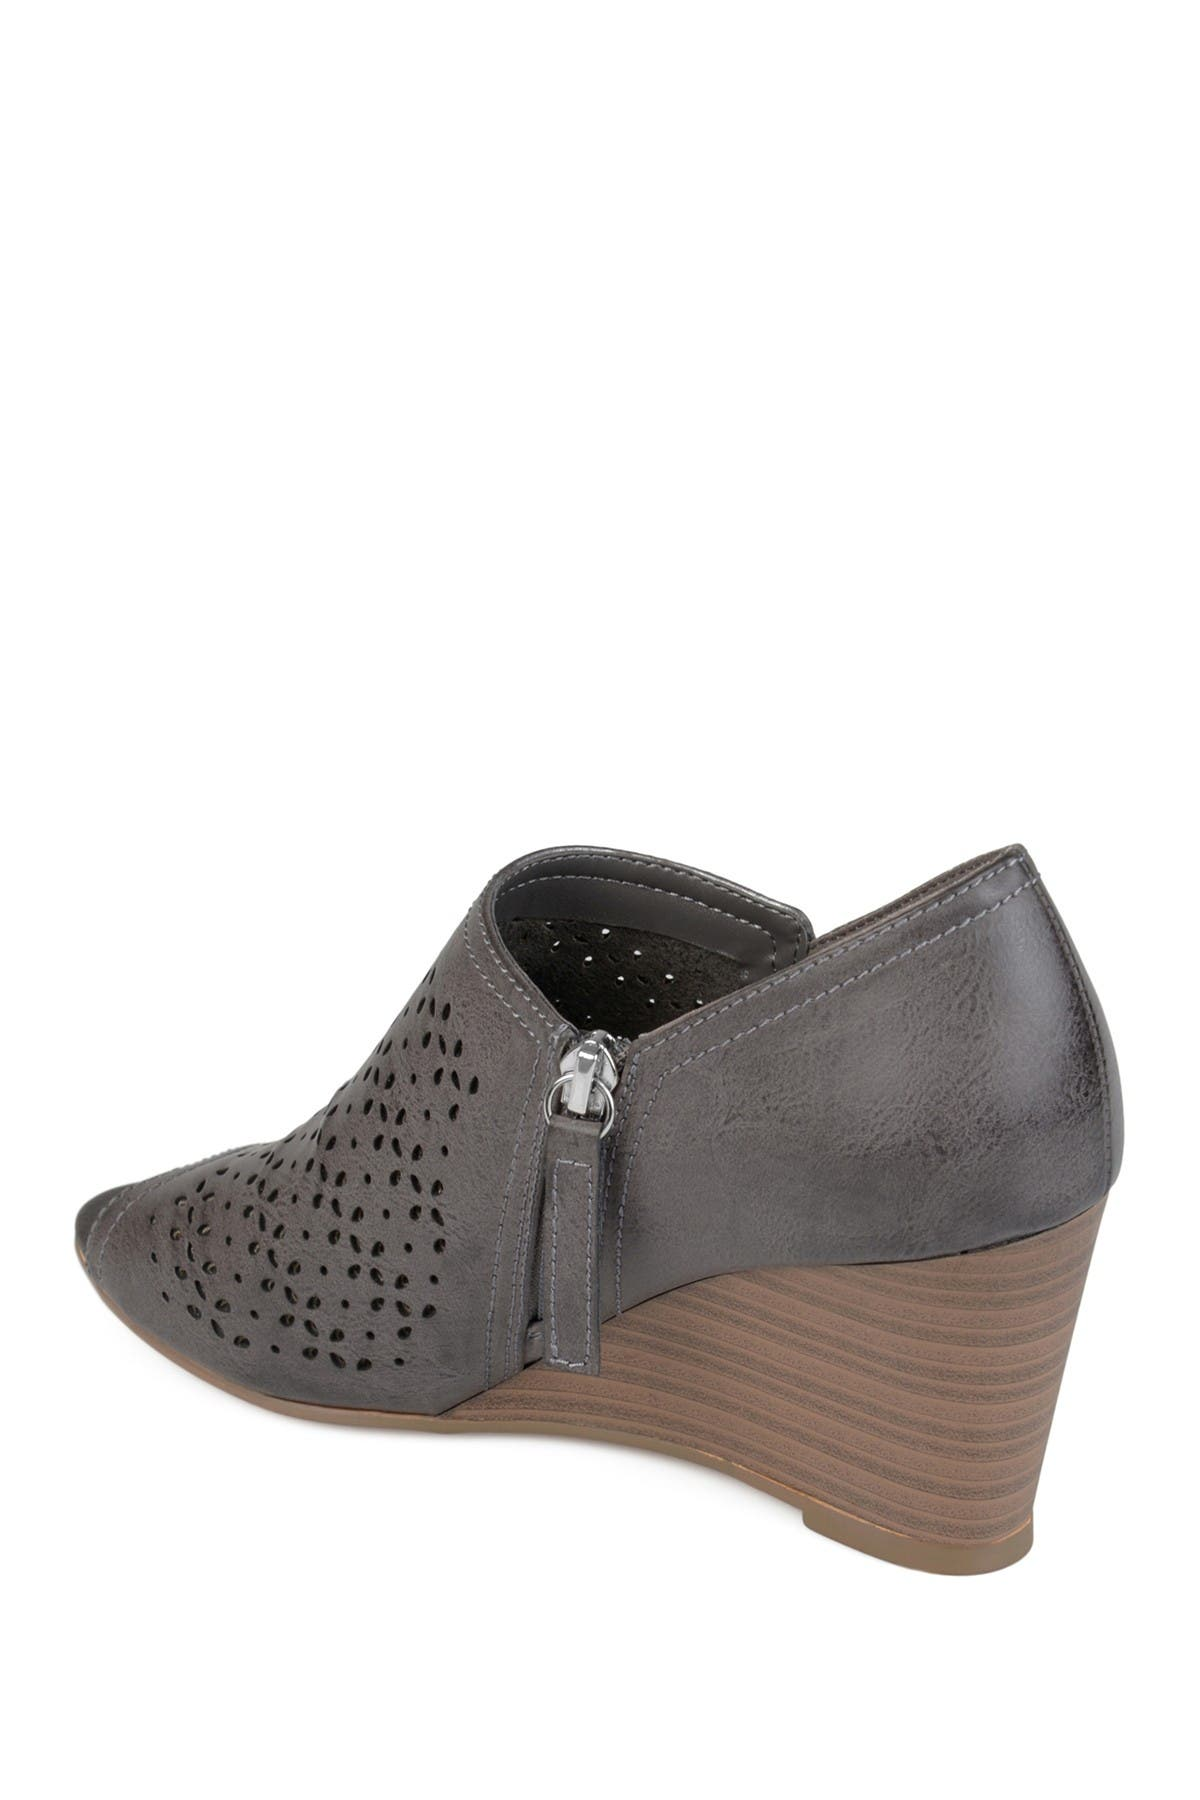 Image of JOURNEE Collection Britny Wedge